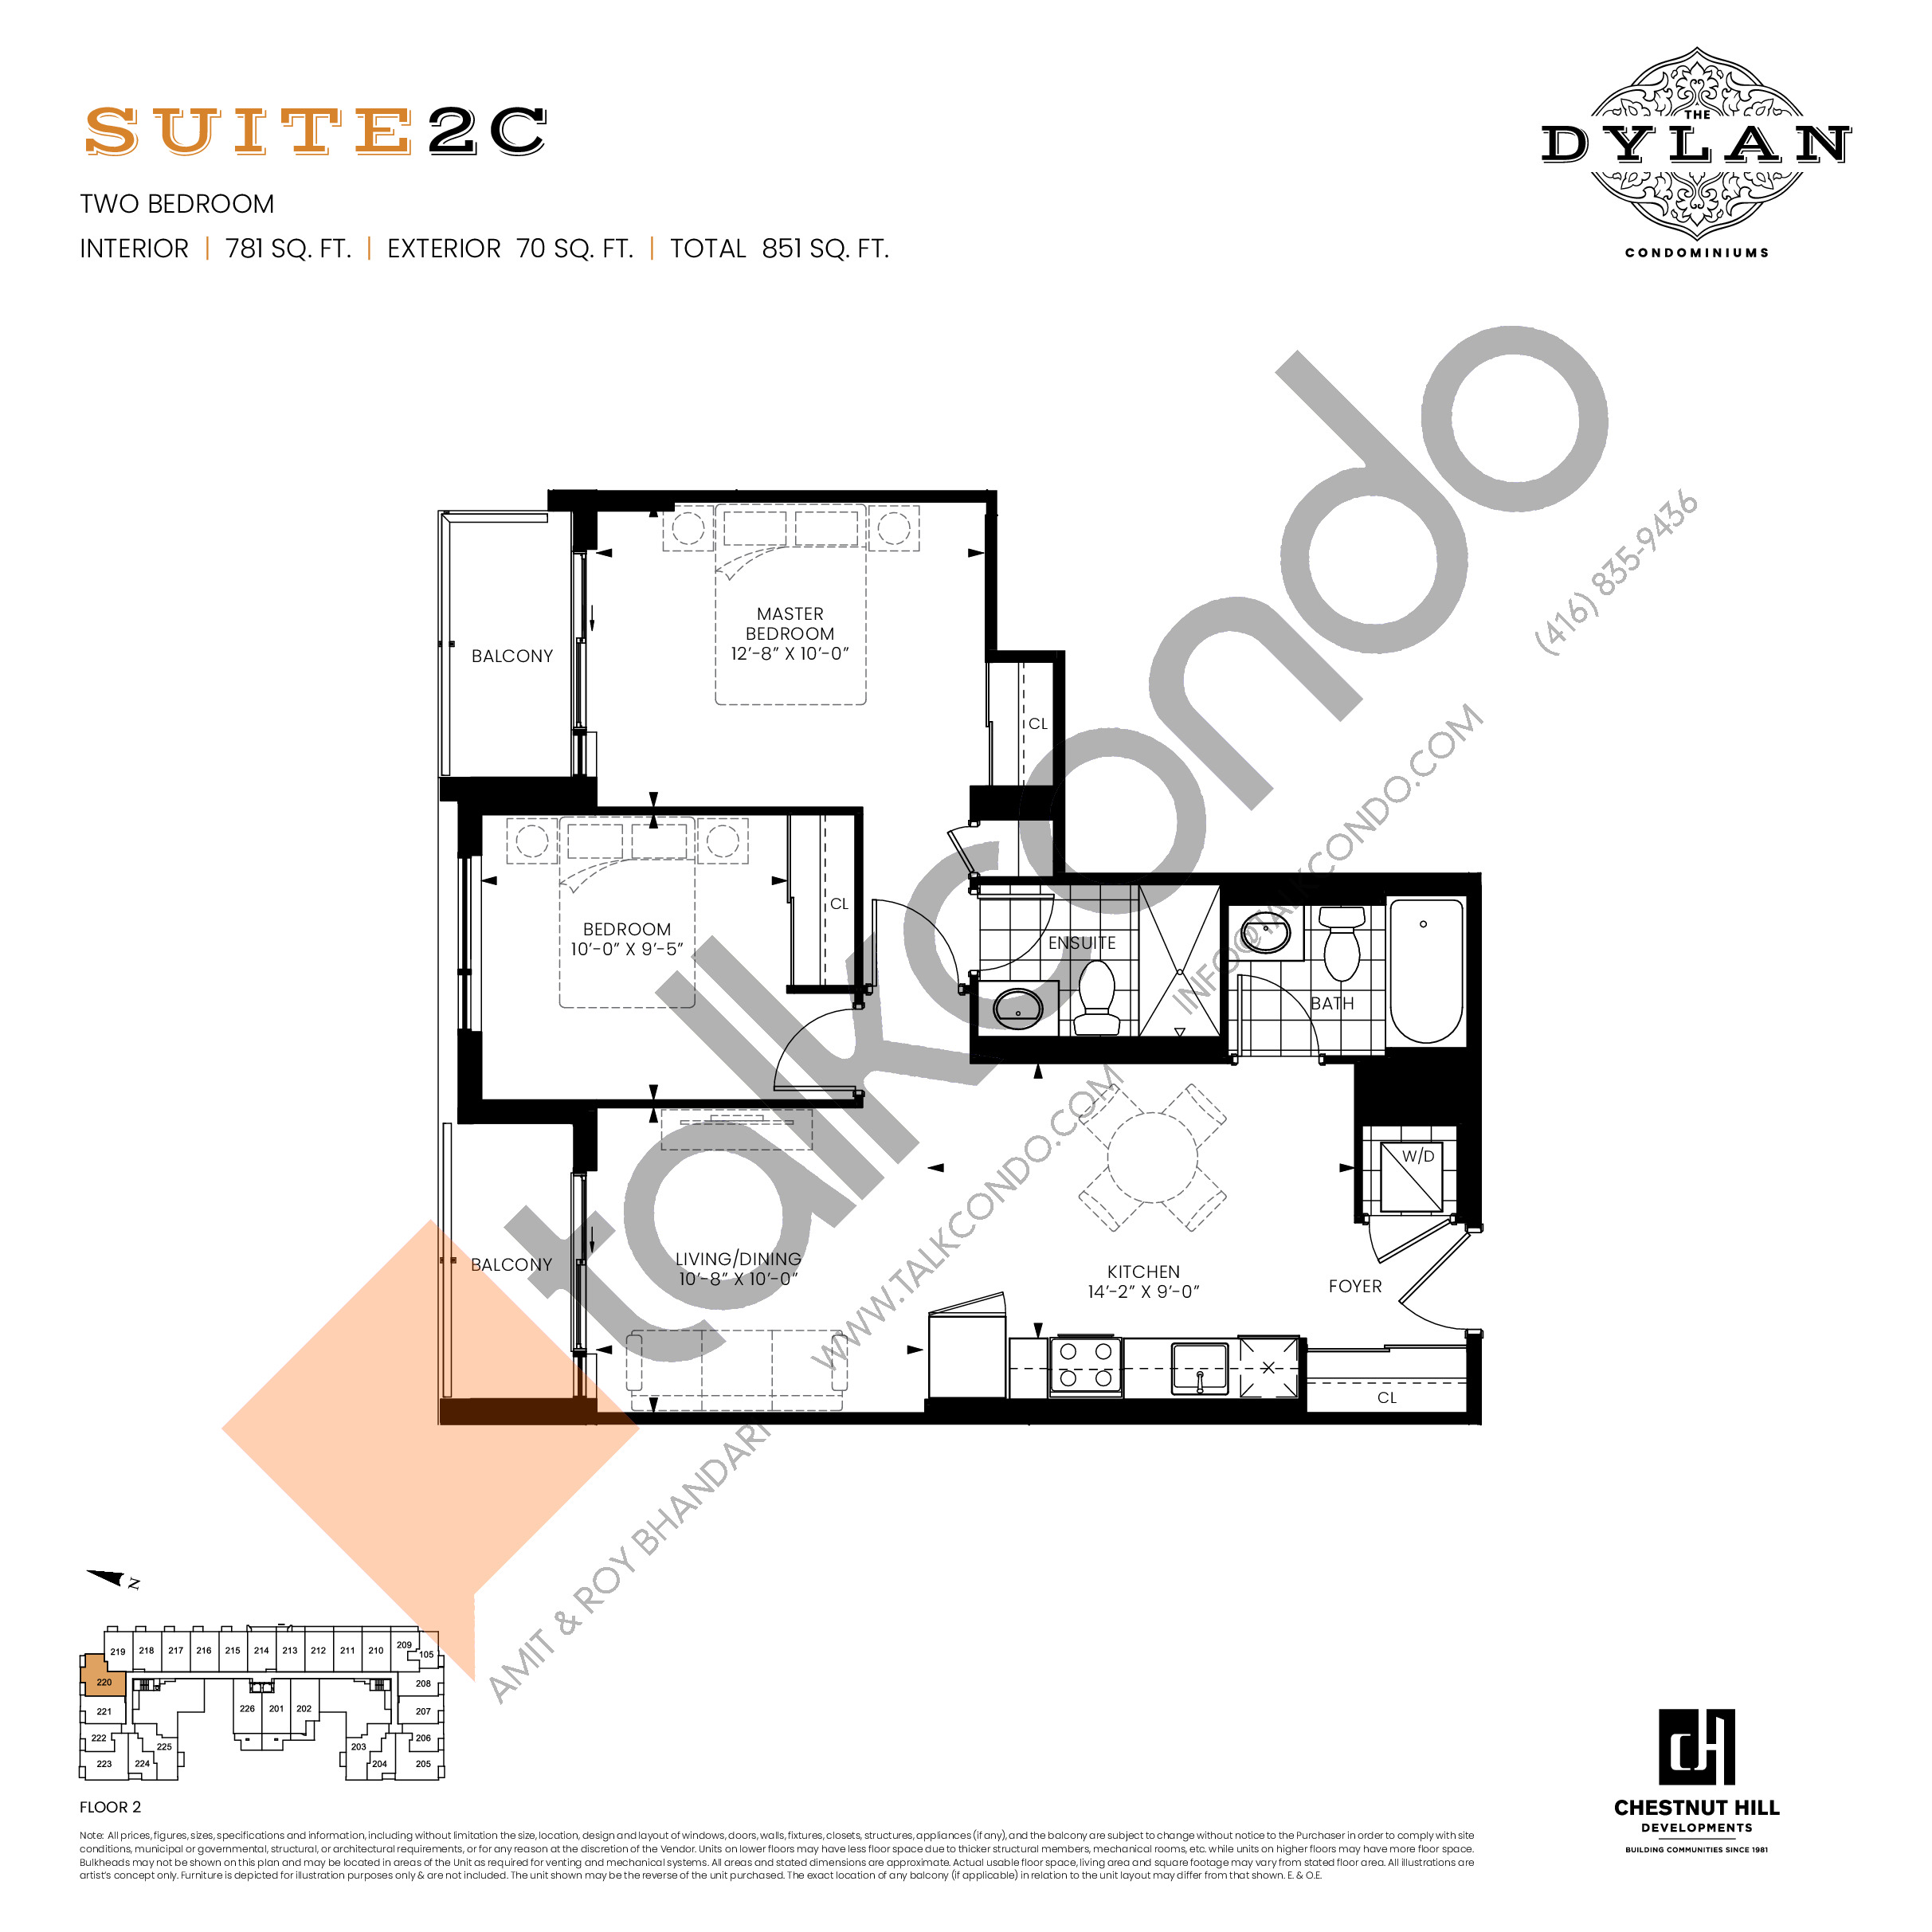 Suite 2C Floor Plan at The Dylan Condos - 781 sq.ft